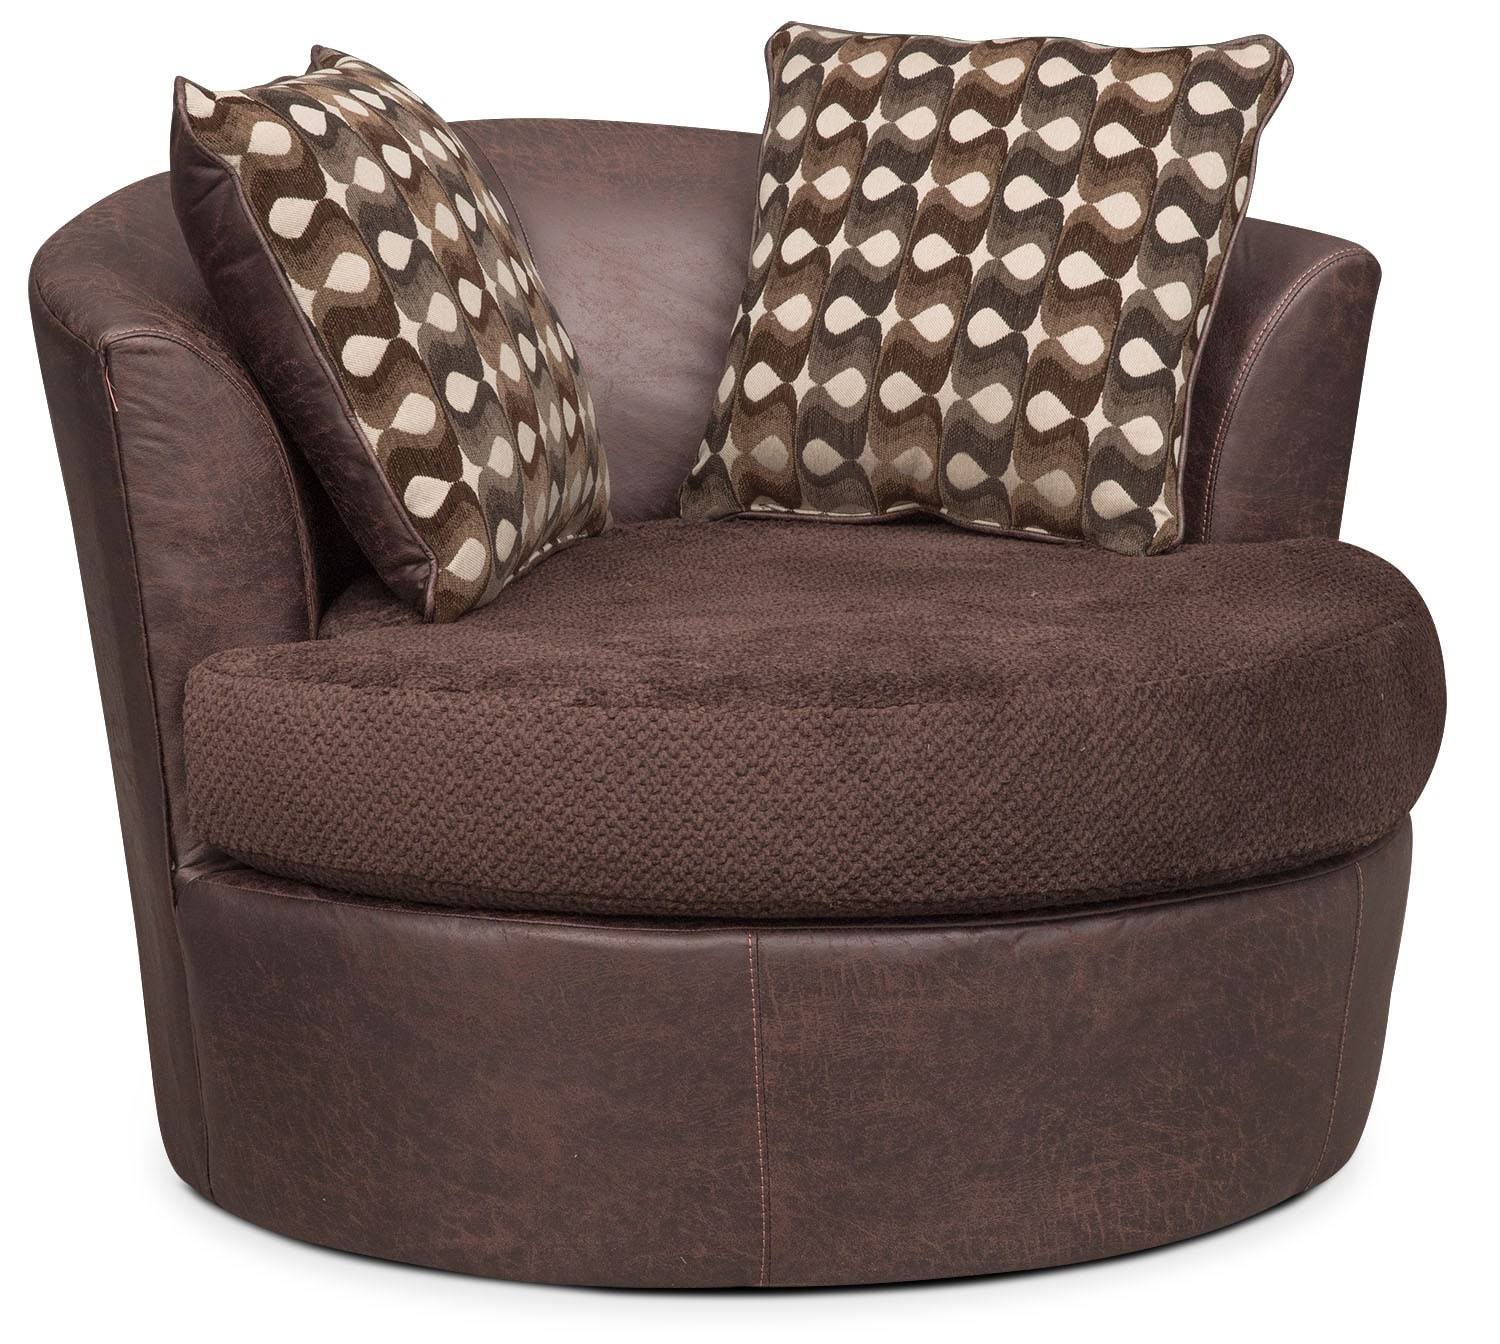 Brando 3 Piece Sectional with Chaise and Swivel Chair Set